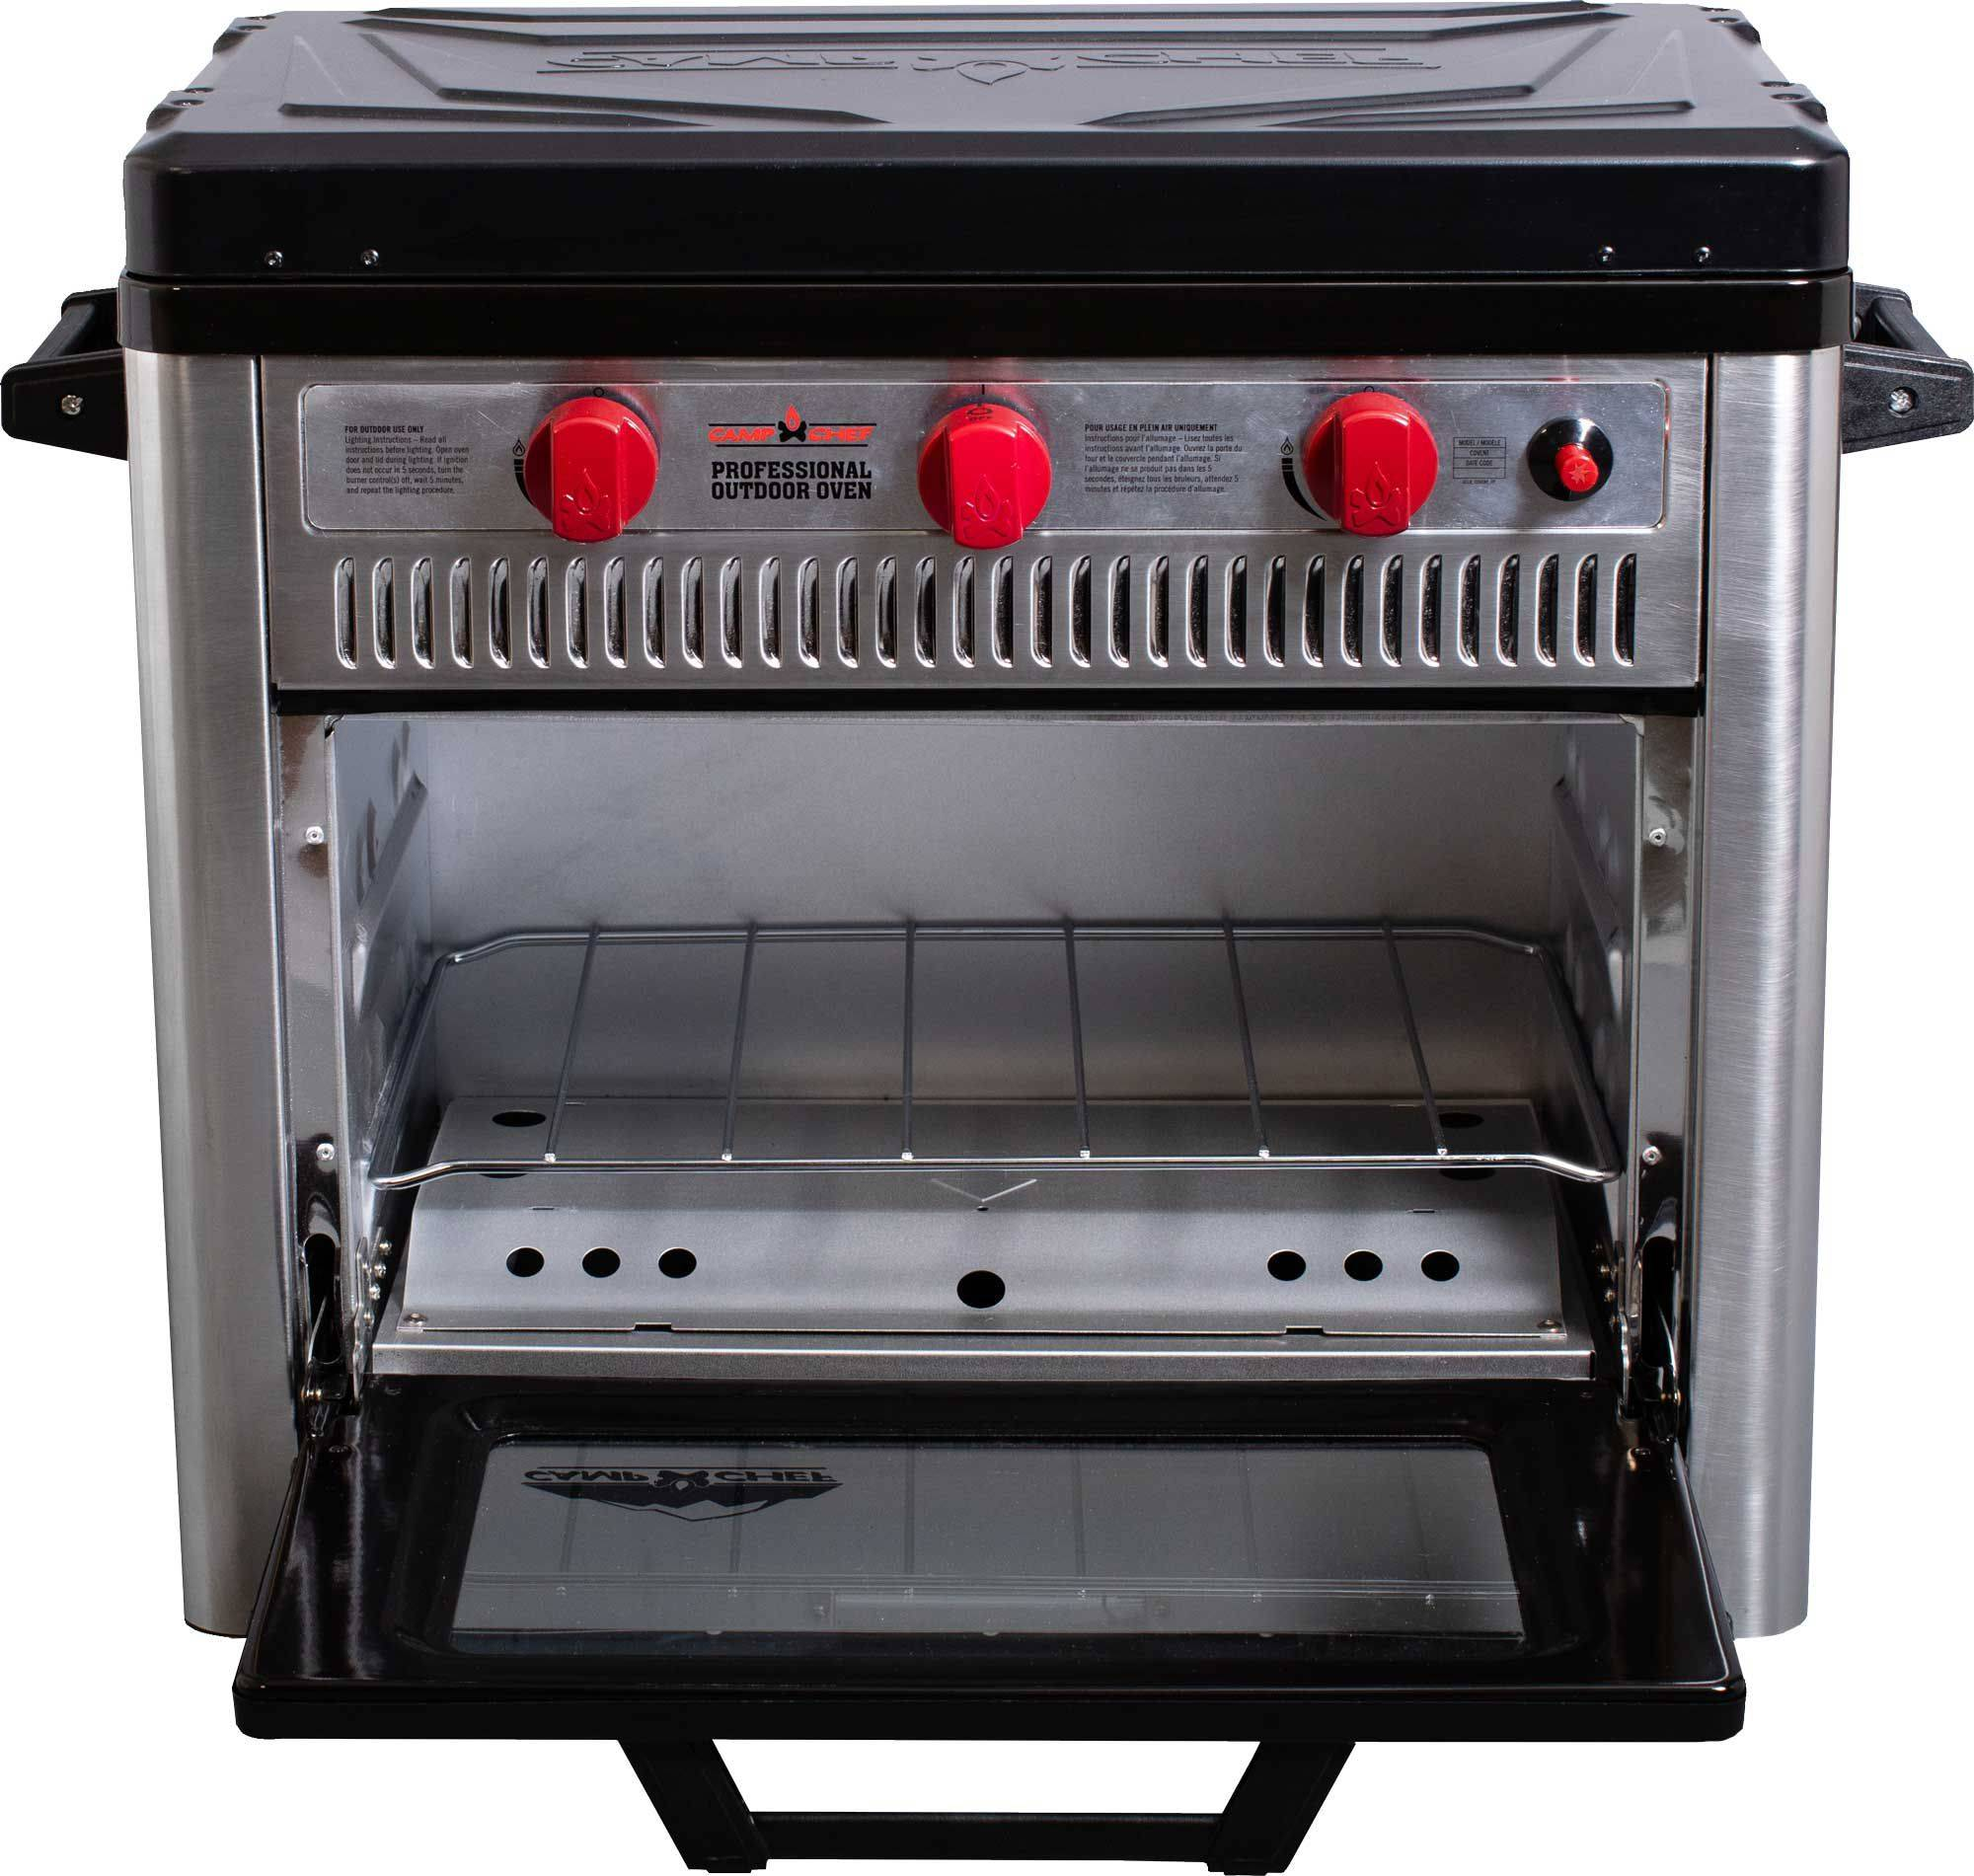 Camp Chef Professional Outdoor Oven, stainless steel